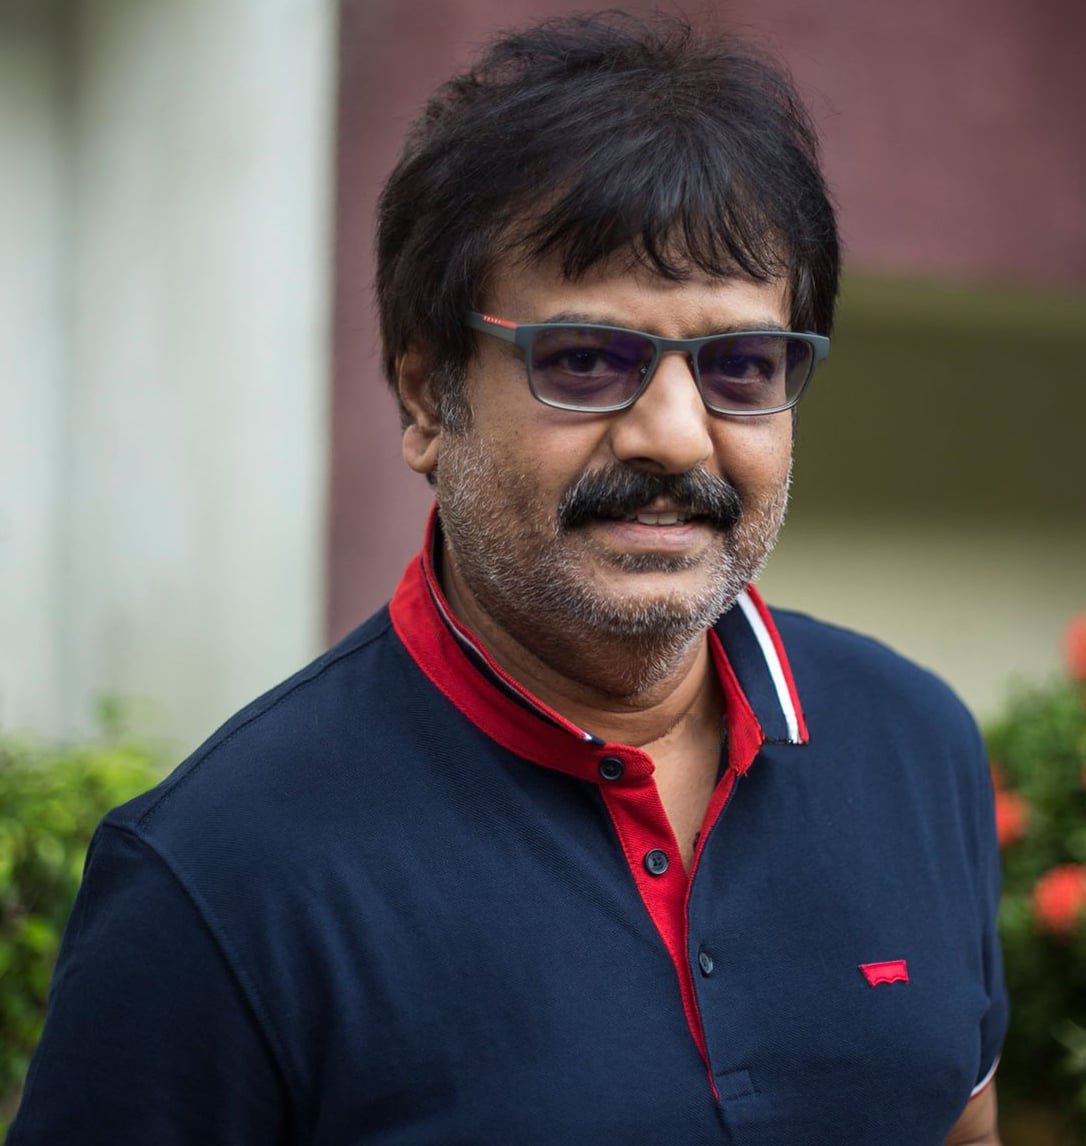 Tamil Actor Vivek Bids The World A Final Adieu At 59 After Suffering From A Heart Attack